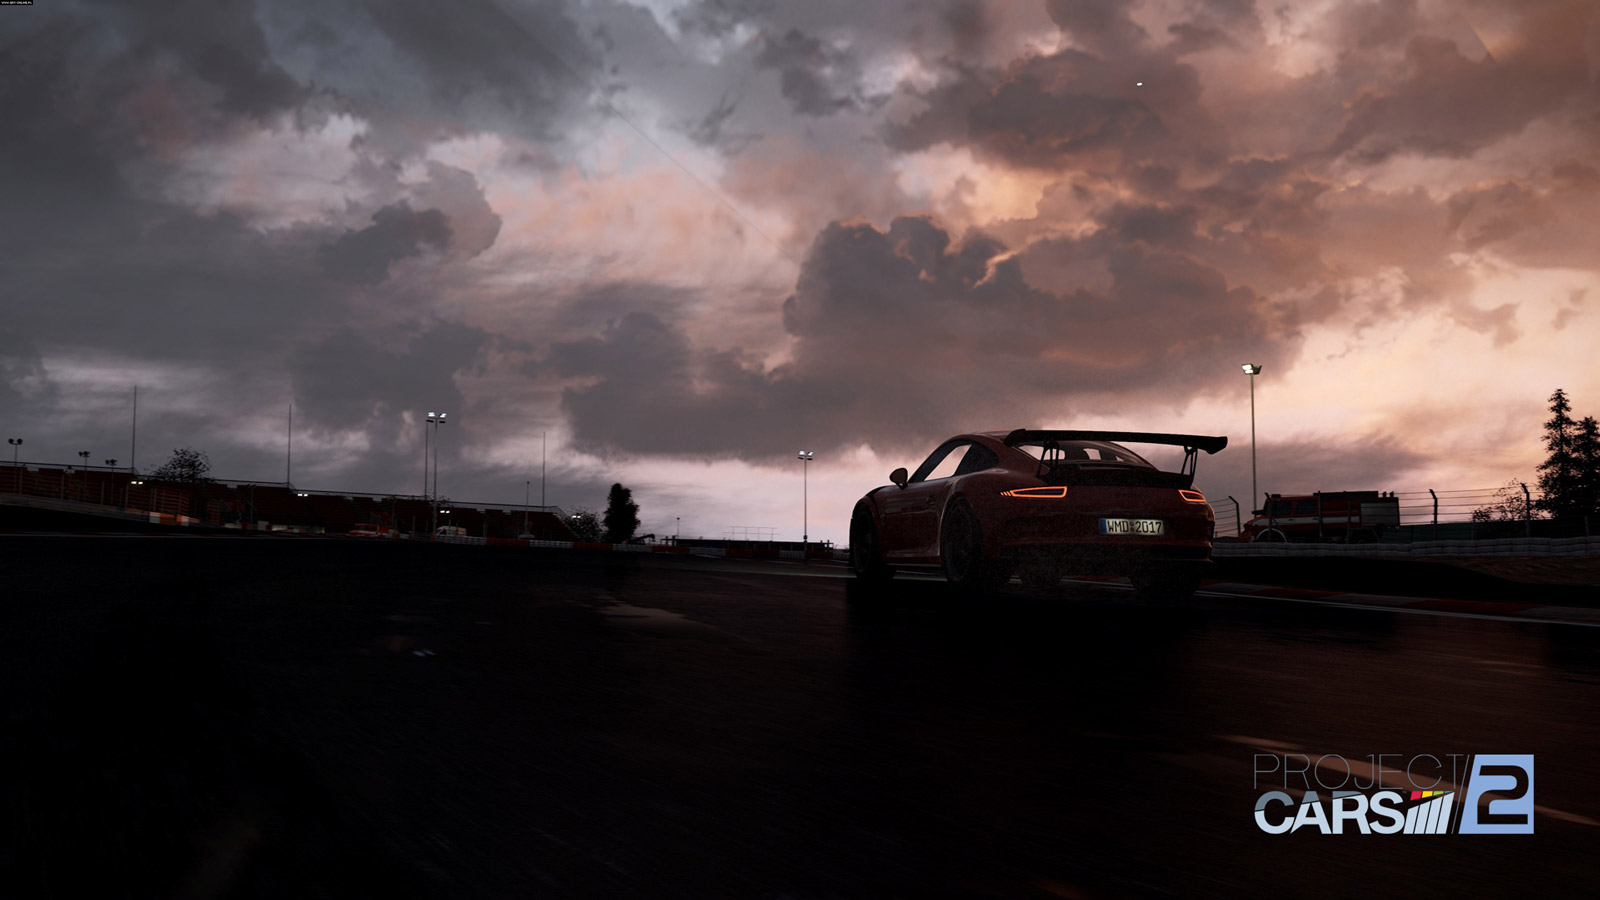 Free Project Cars 2 Wallpaper in 1600x900